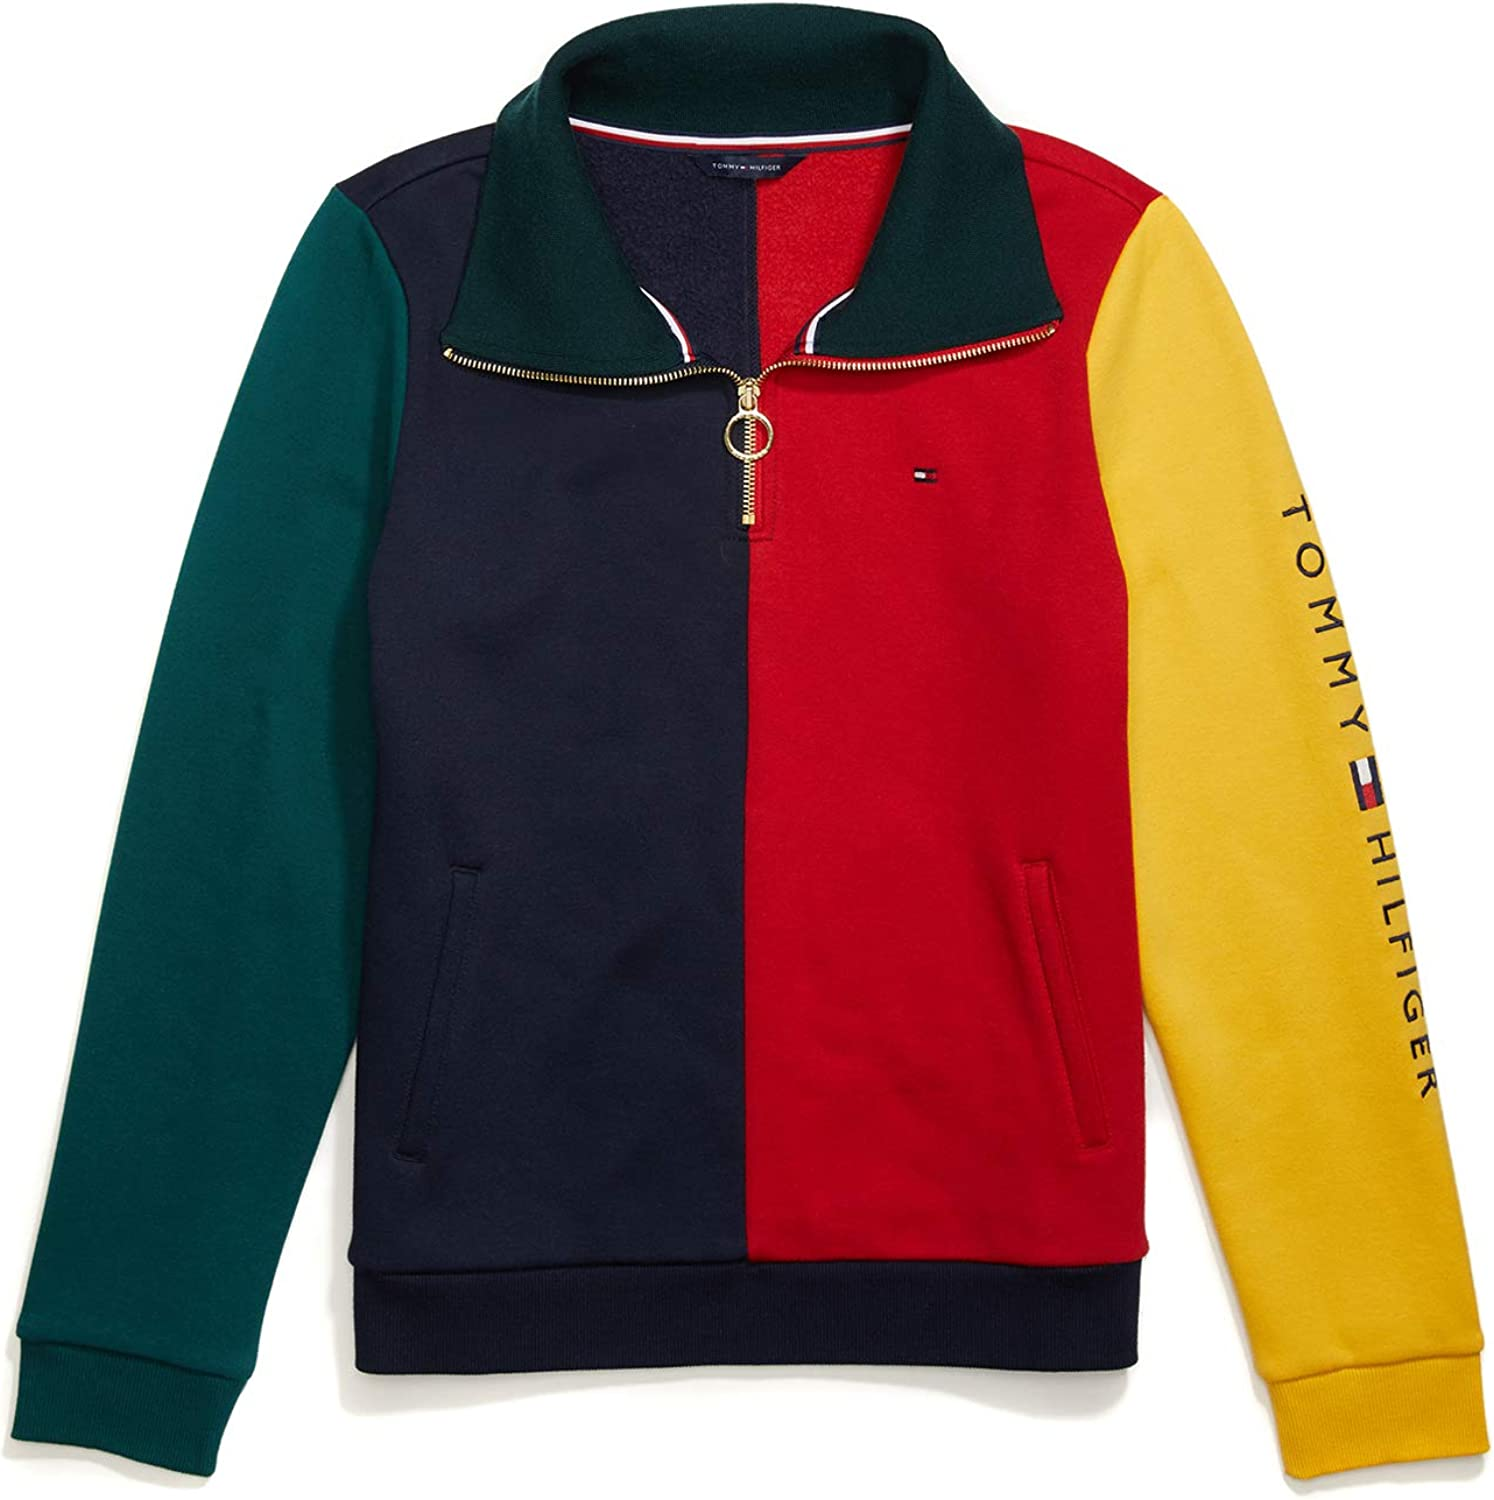 Tommy Hilfiger Womens Adaptive Hoodie Sweatshirt with Extended Zipper Pull